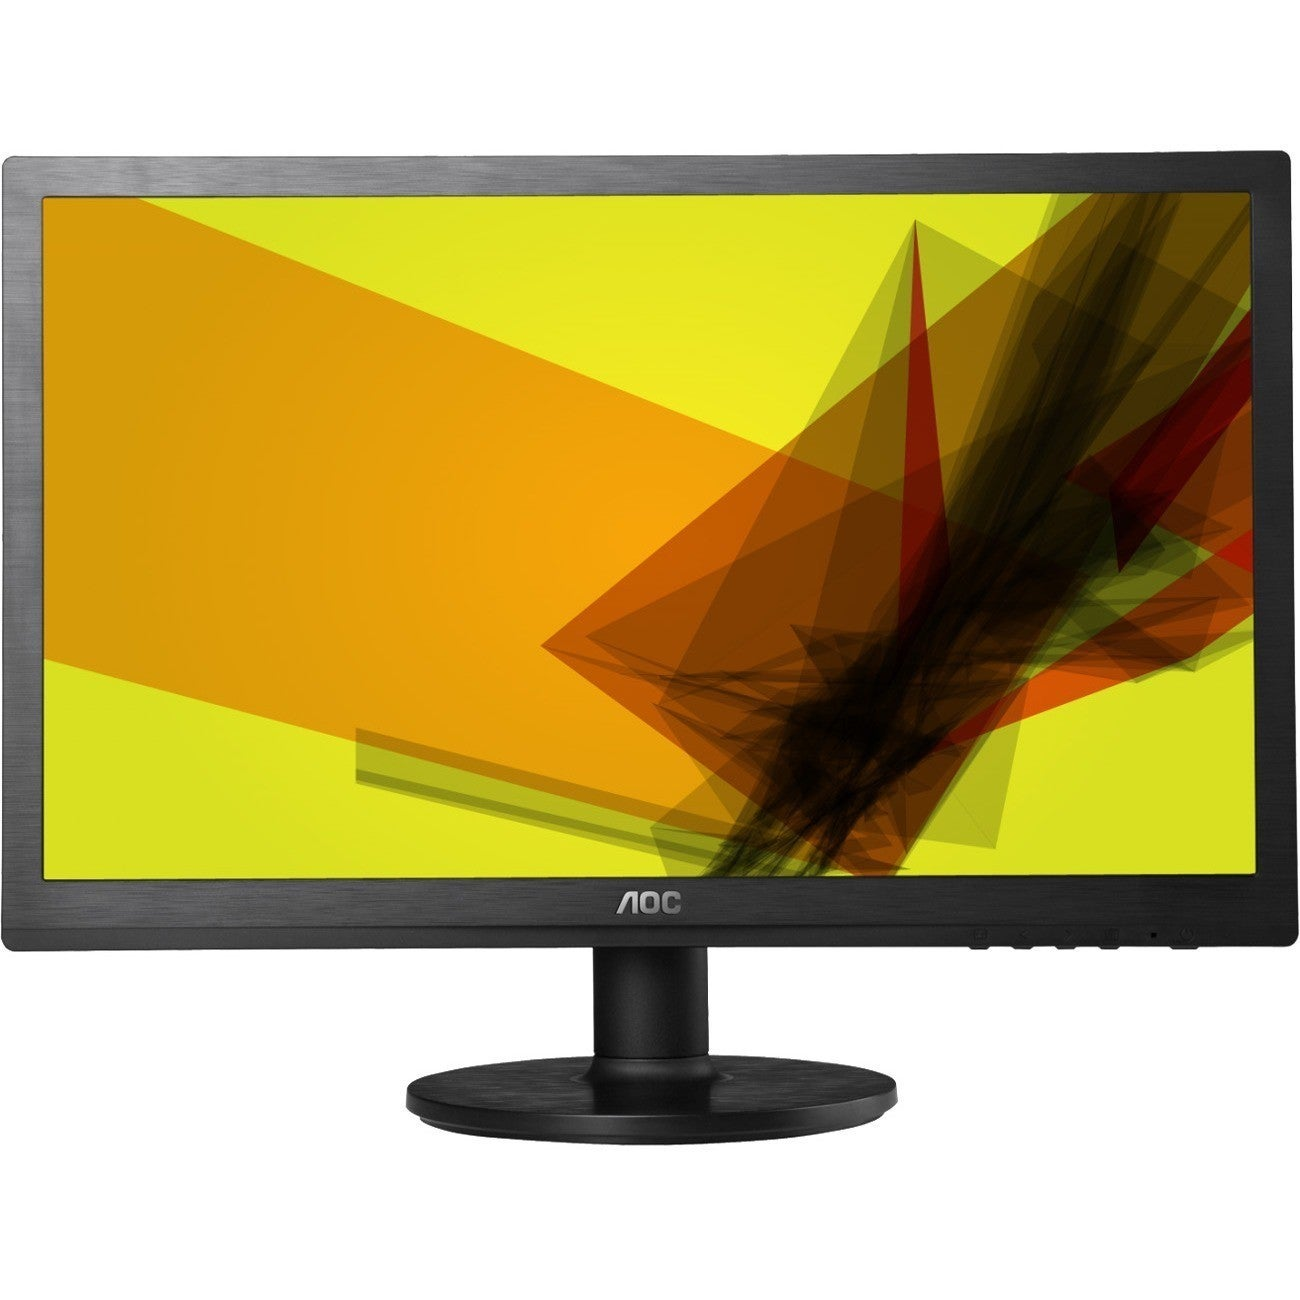 "AOC e2260Swda 21.5"" LED LCD Monitor - 16:9 - 5ms, Black, ..."